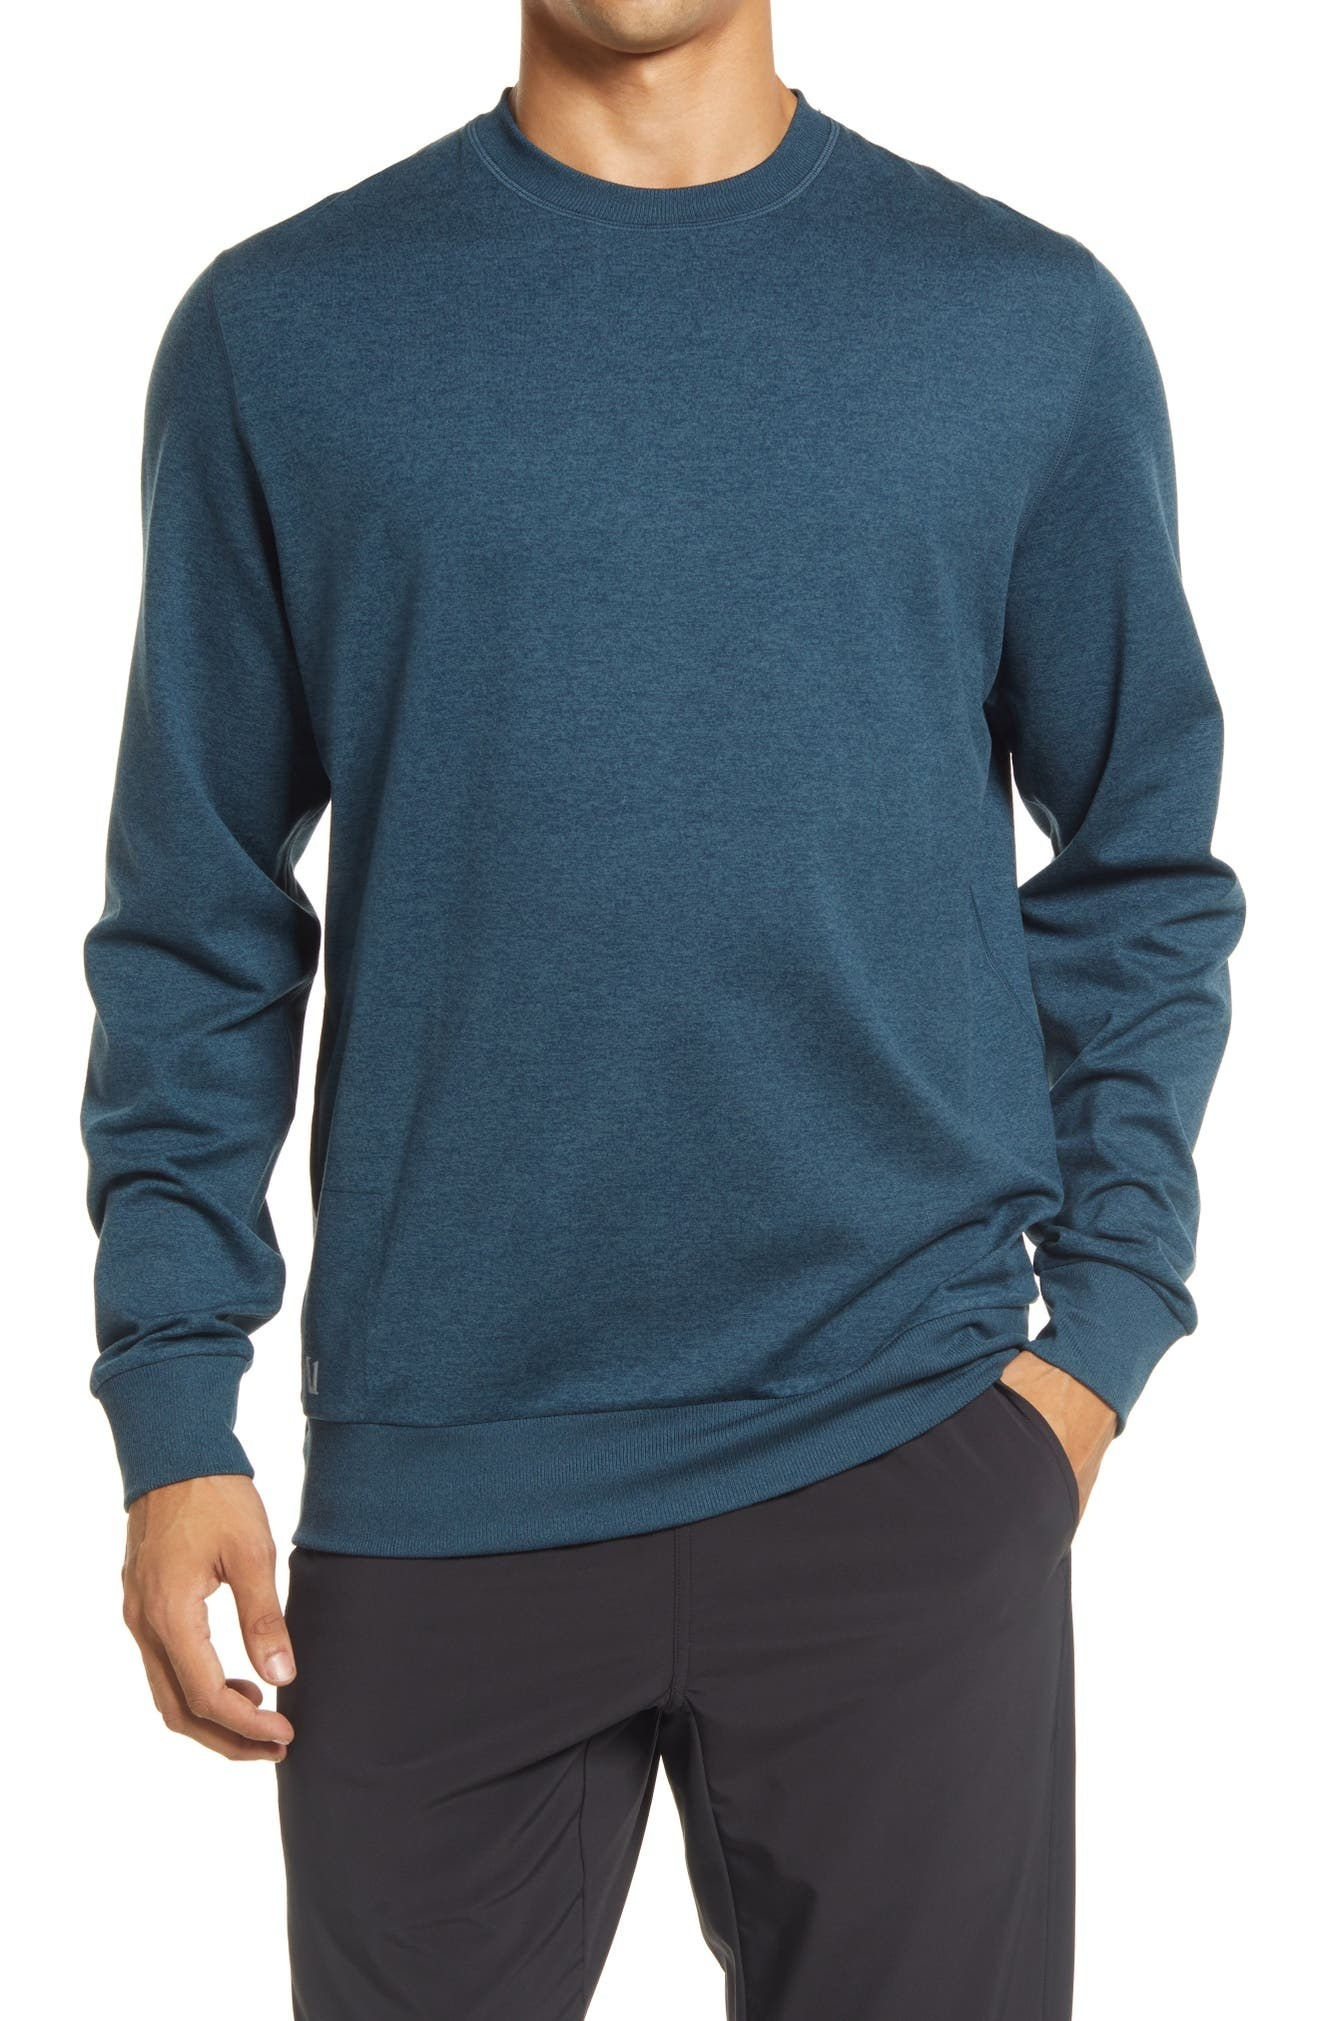 Model wearing the pullover in blue